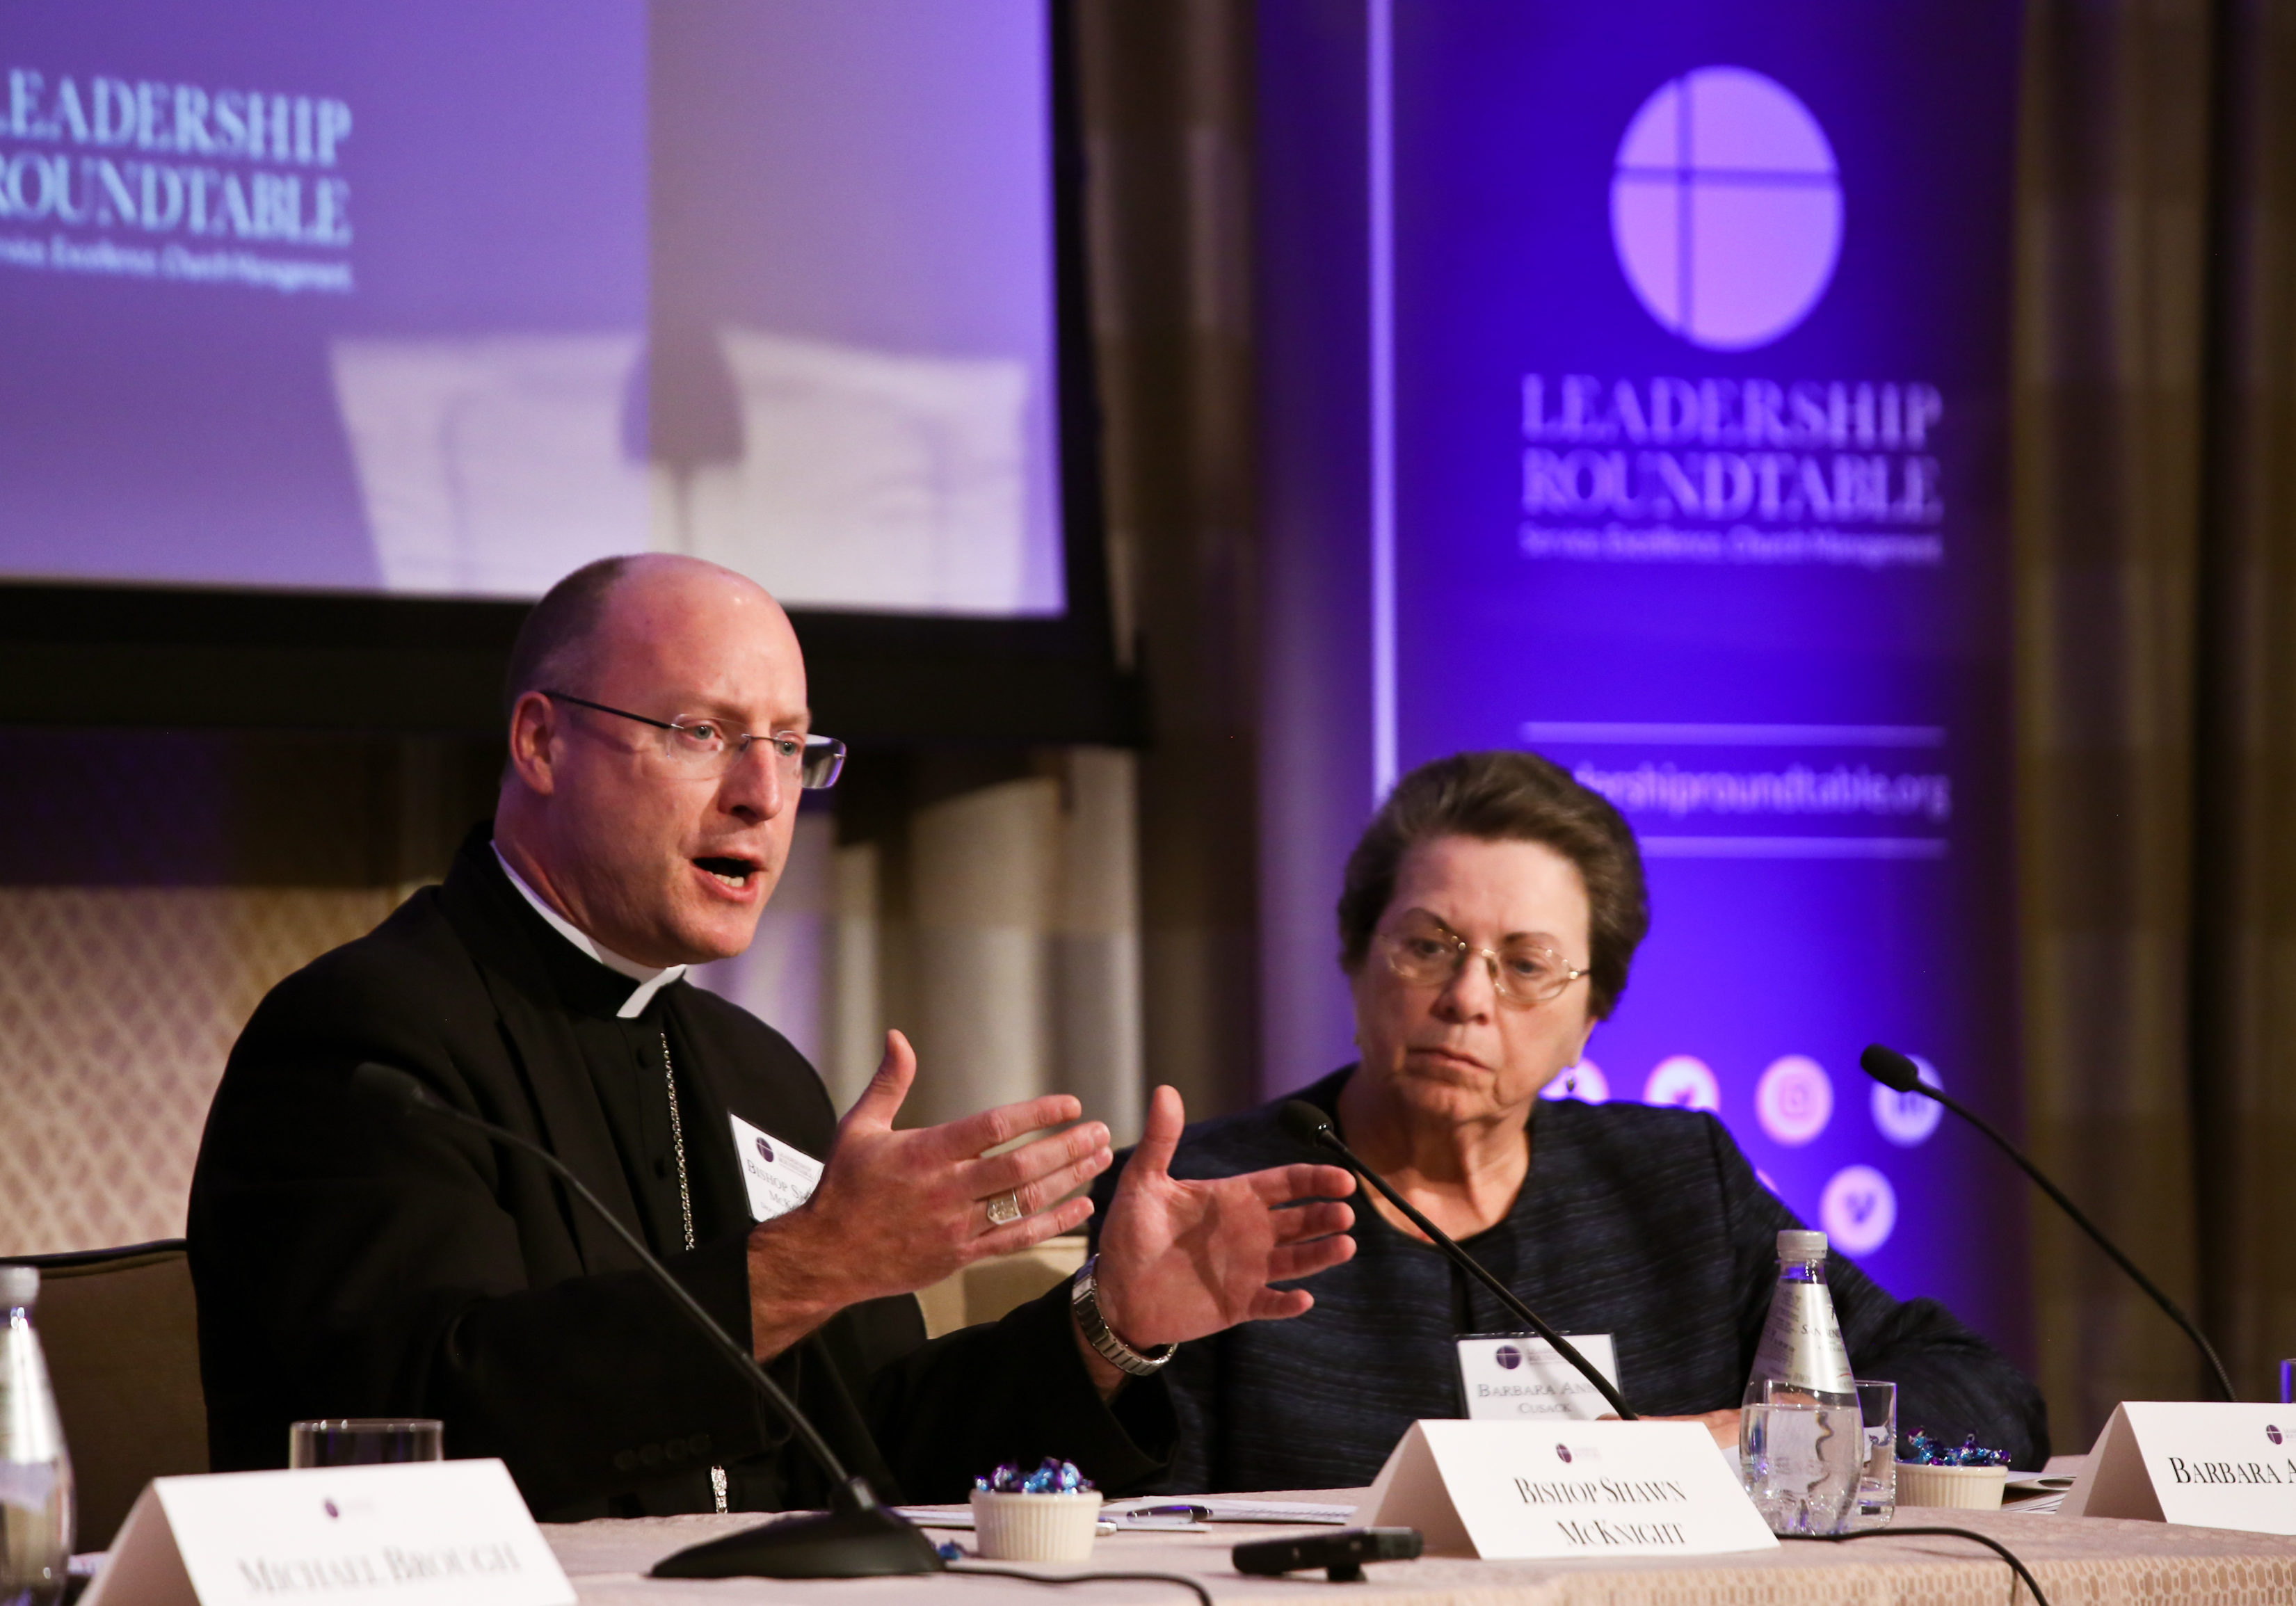 Bishop W. Shawn McKnight of Jefferson City, Mo., speaks during a Feb. 1, 2019, panel discussion at the Leadership Roundtable's Catholic Partnership Summit in Washington to put forth possible solutions to the church's sex abuse crisis. (CNS photo/Ralph Alswang, courtesy Leadership Roundtable) See SUMMIT-ABUSE Feb. 5, 2019.